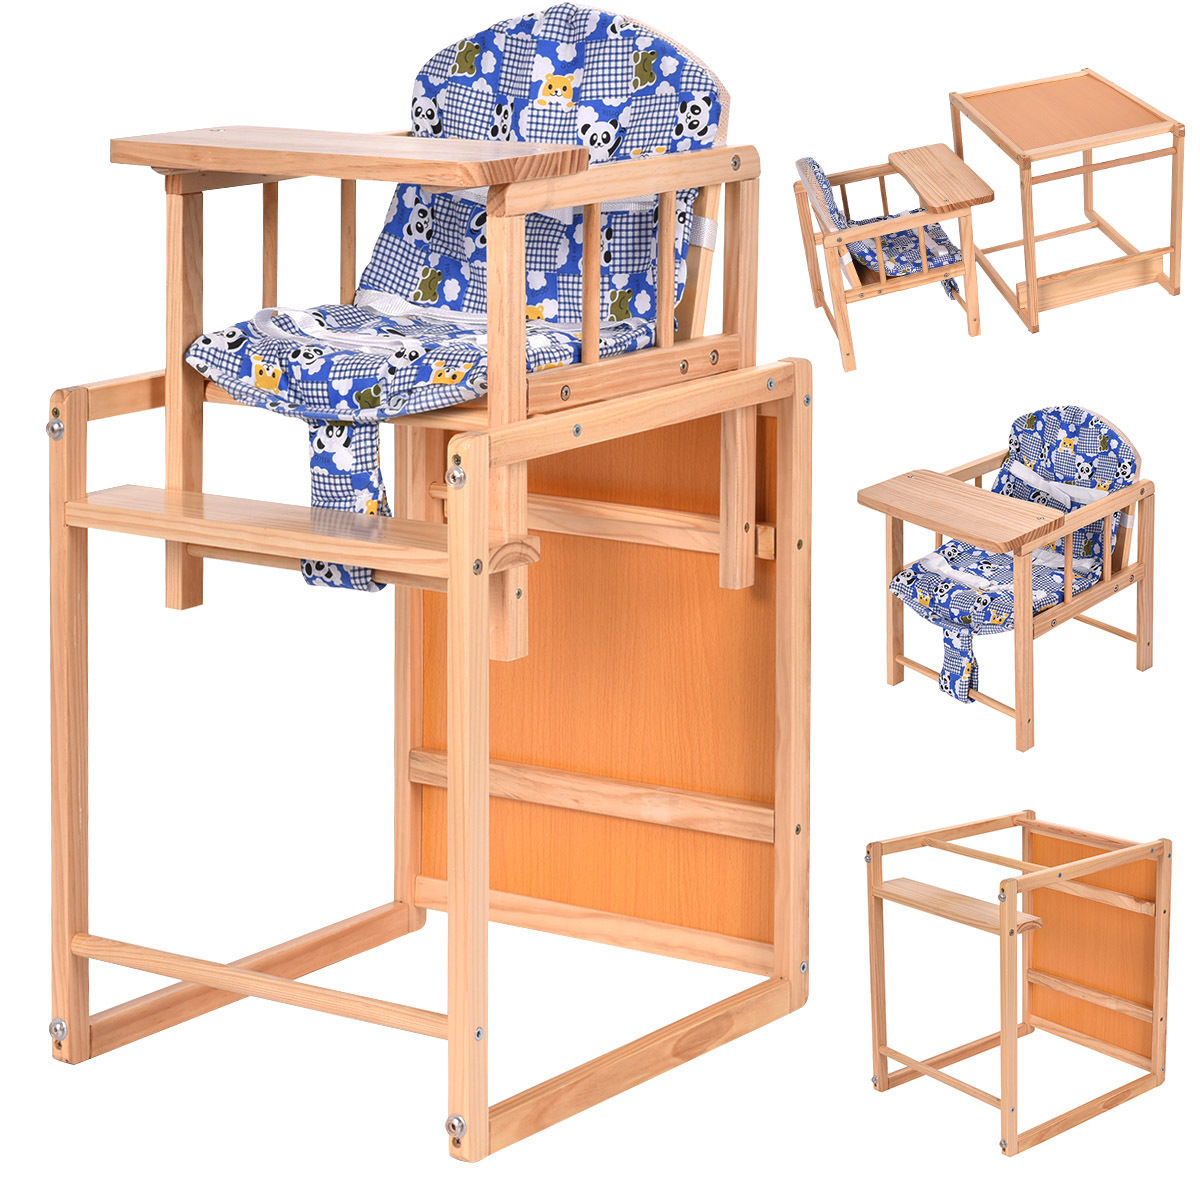 Ordinaire Costway 2 In 1 Solid Wooden Baby High Chair Feeding Infant Toddler Table  Kids Child Home